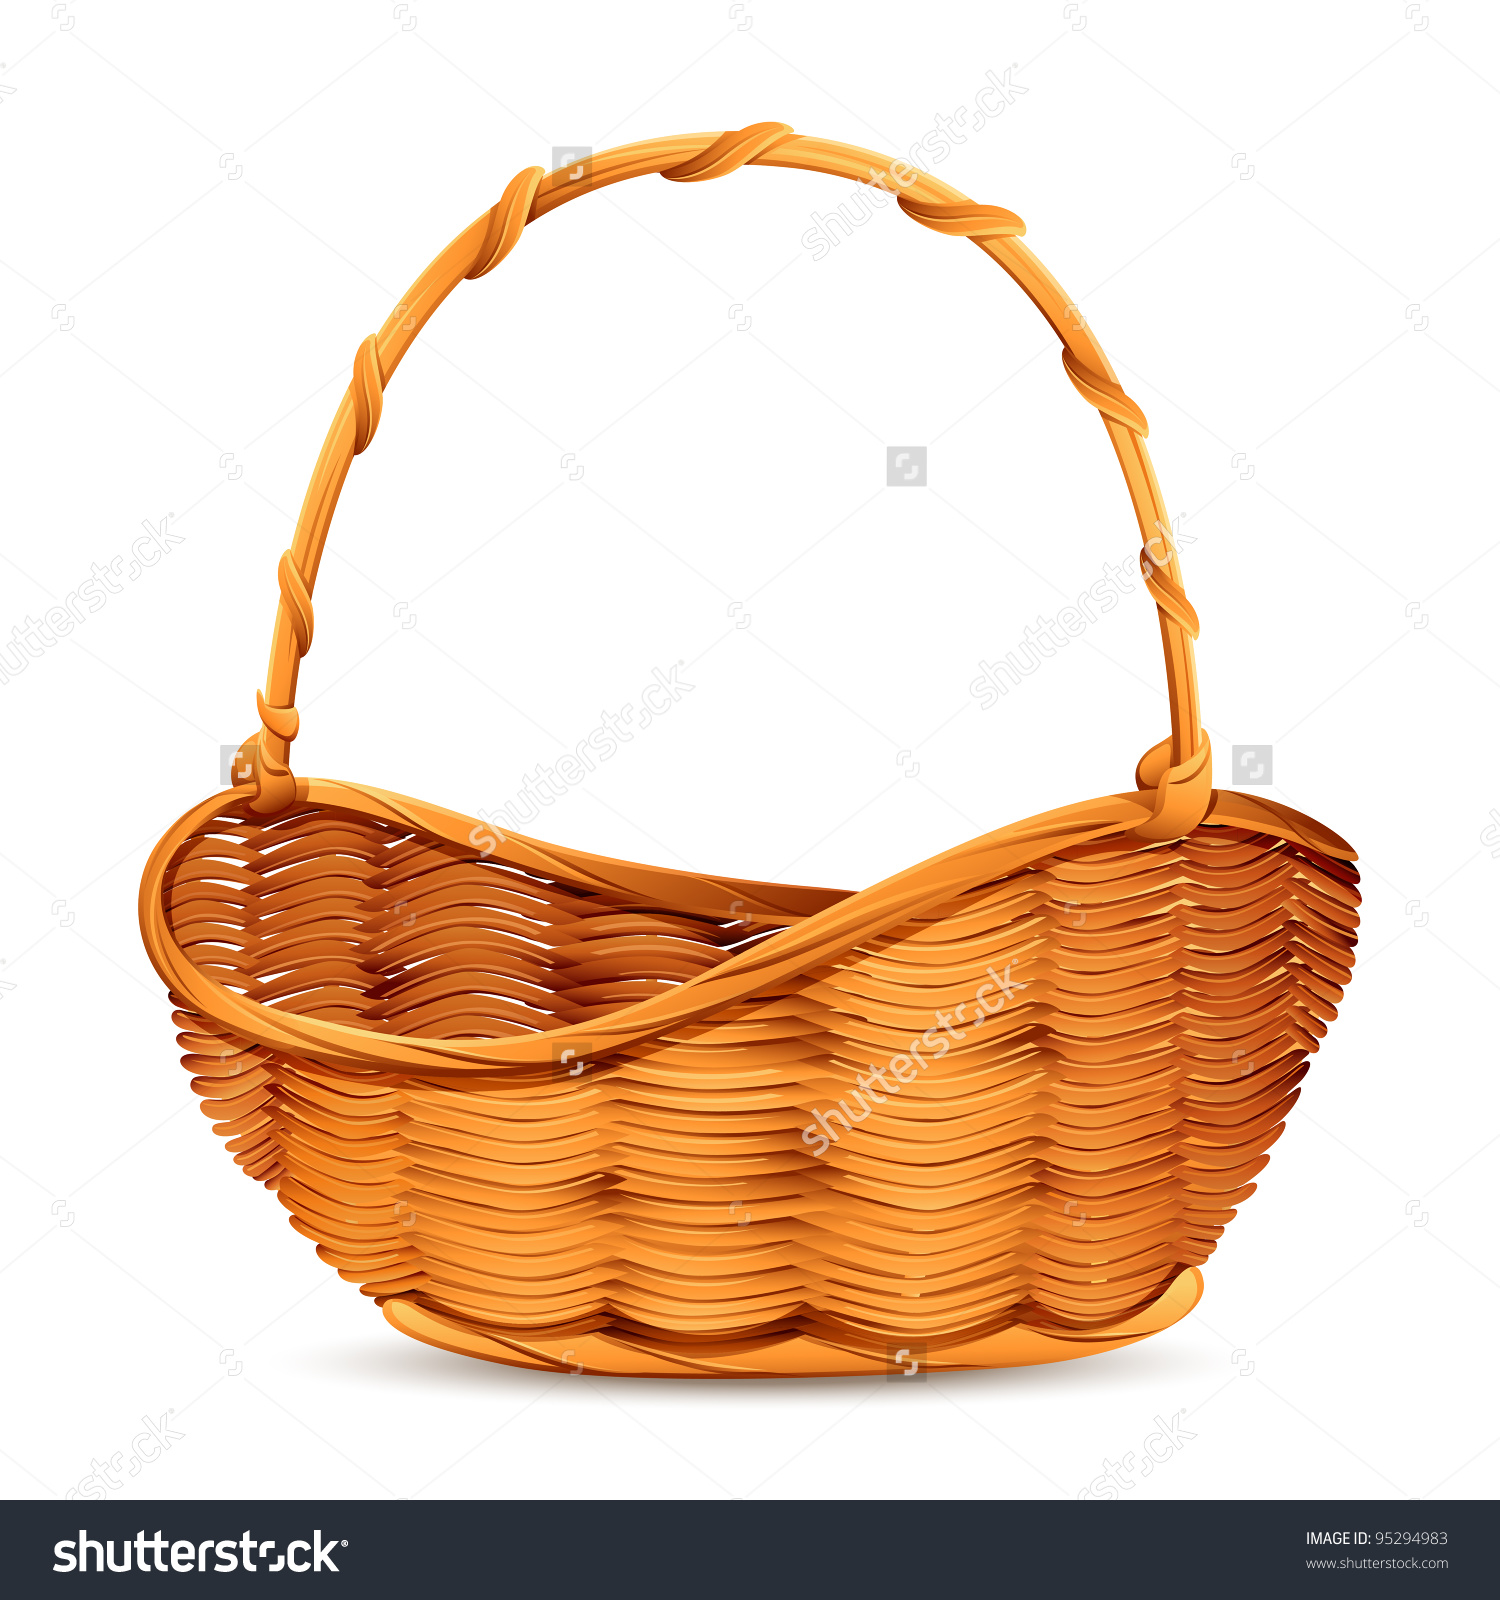 Vector Illustration Wicker Basket On White Stock Vector 95294983.